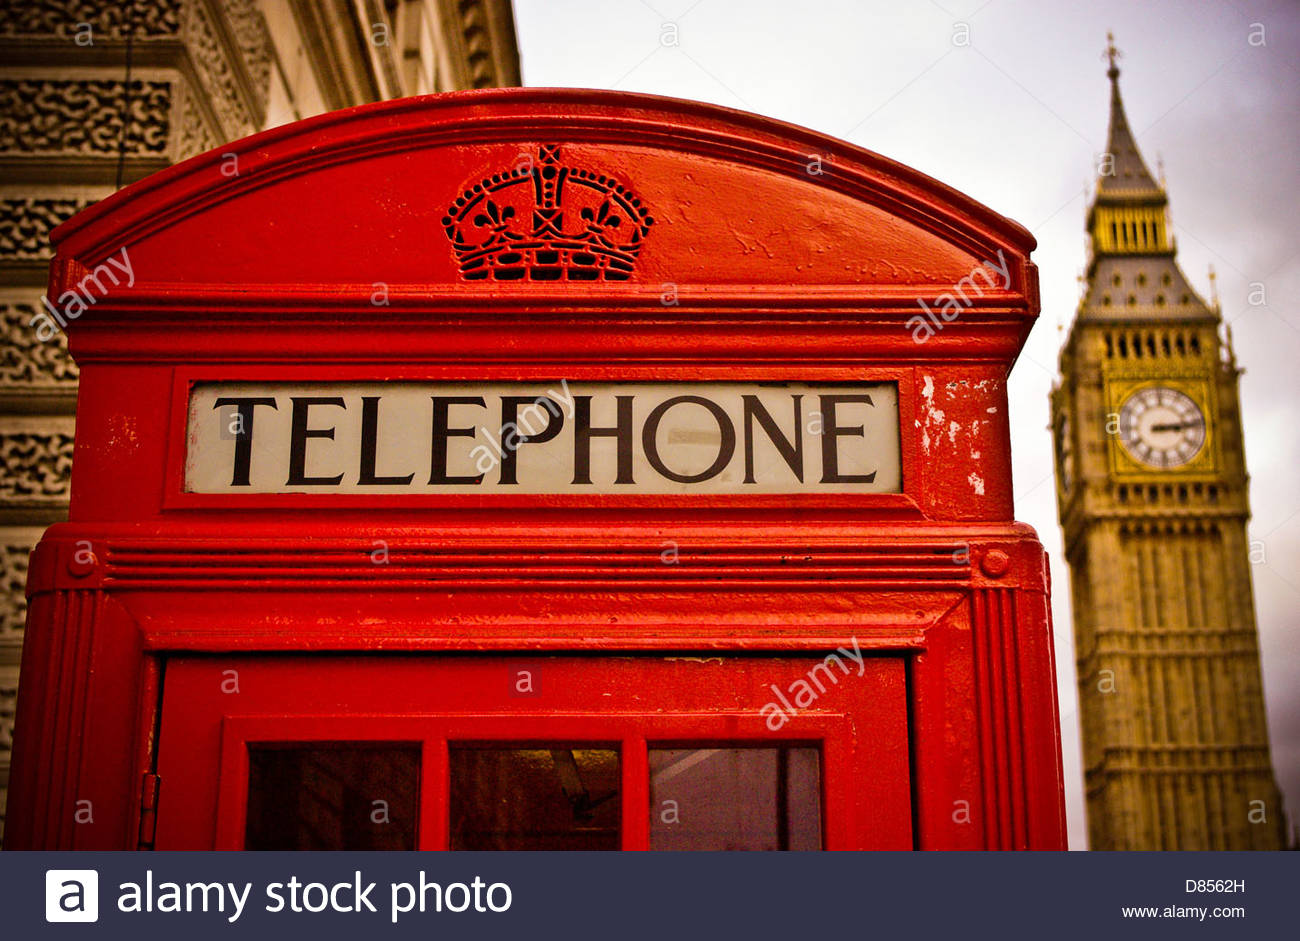 red telephone box london next to Big Ben clock Houses of Parliament whitehall - Stock Image